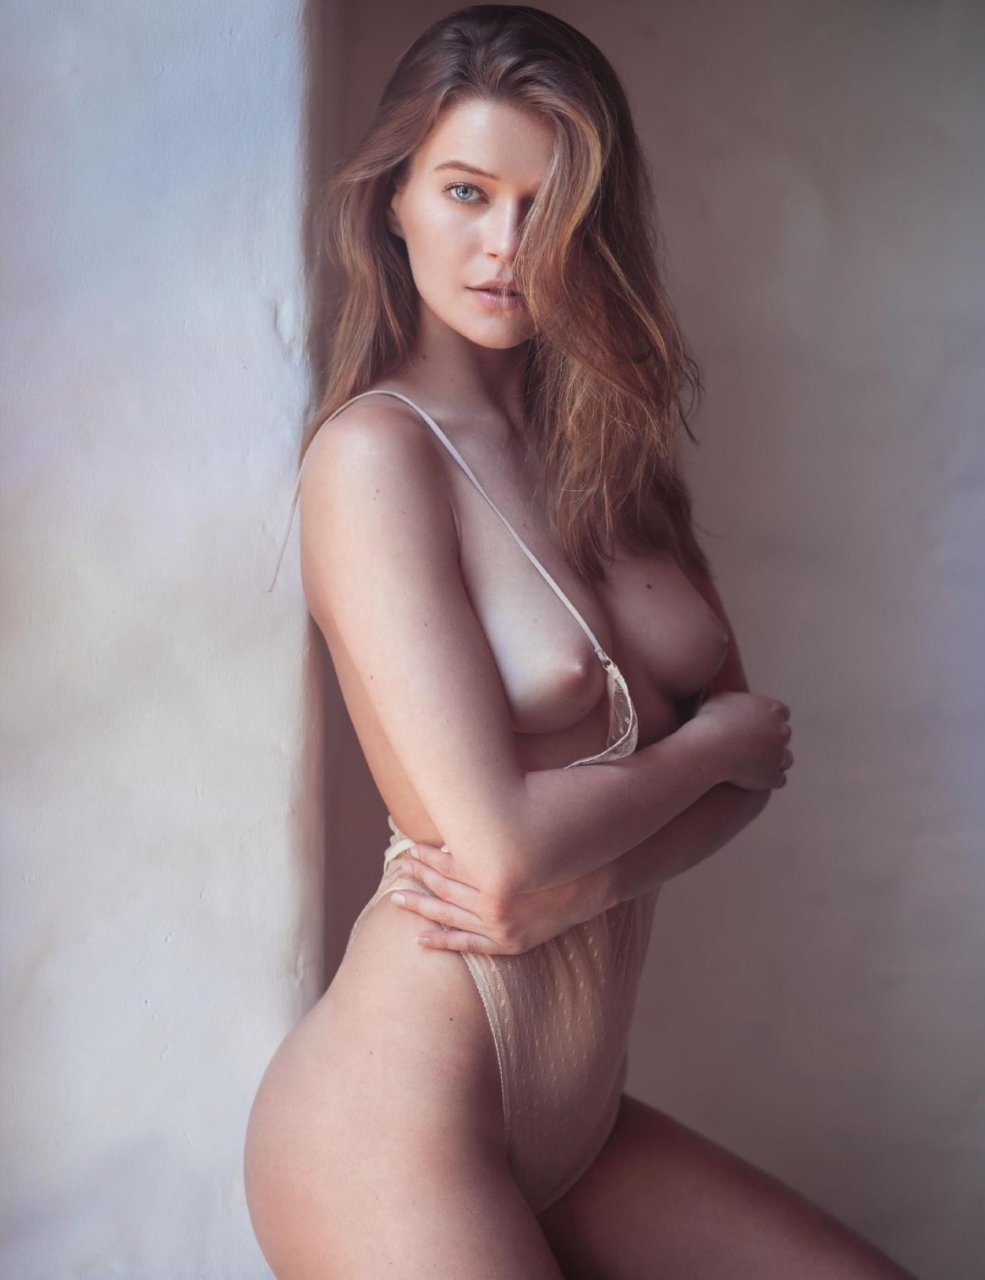 Suzanne collins thefappening and nude